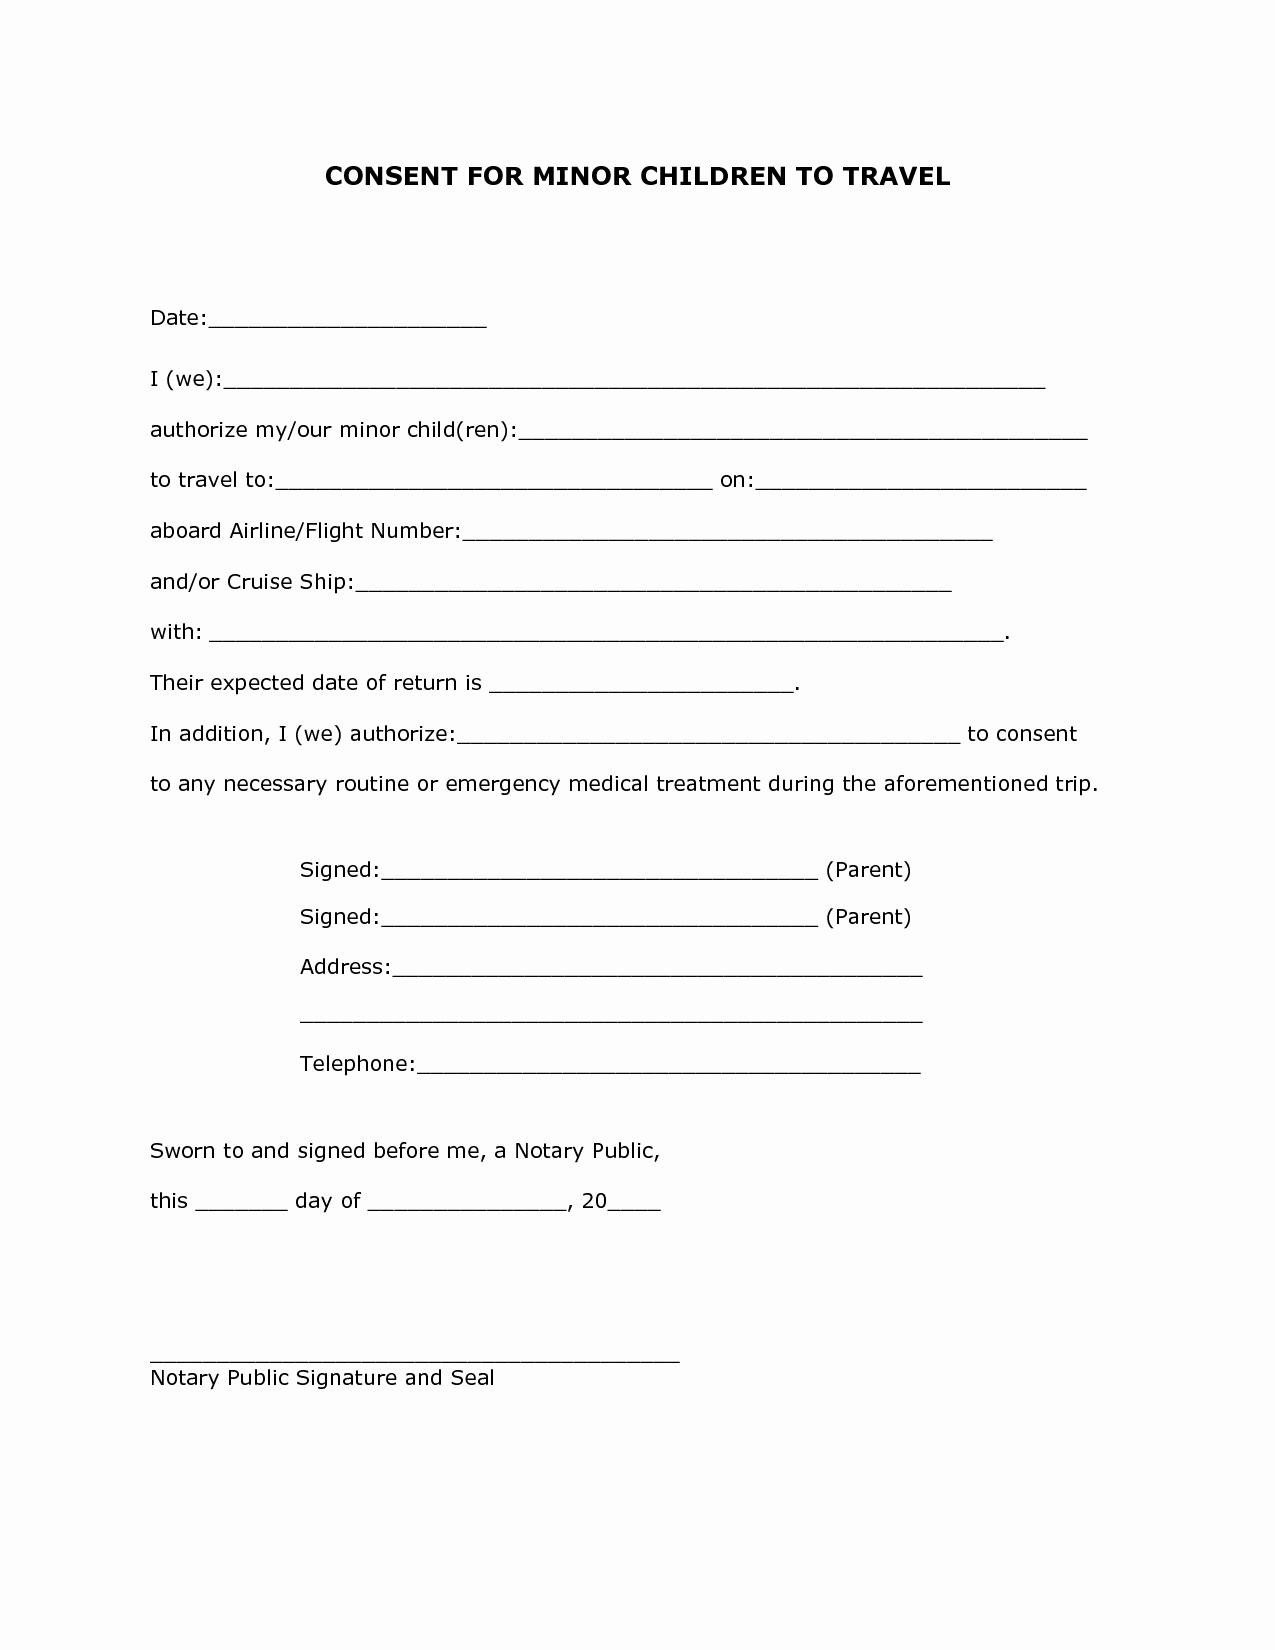 Parental Consent form Template Travel New Best S Of Parent Consent Letter for Minor Consent